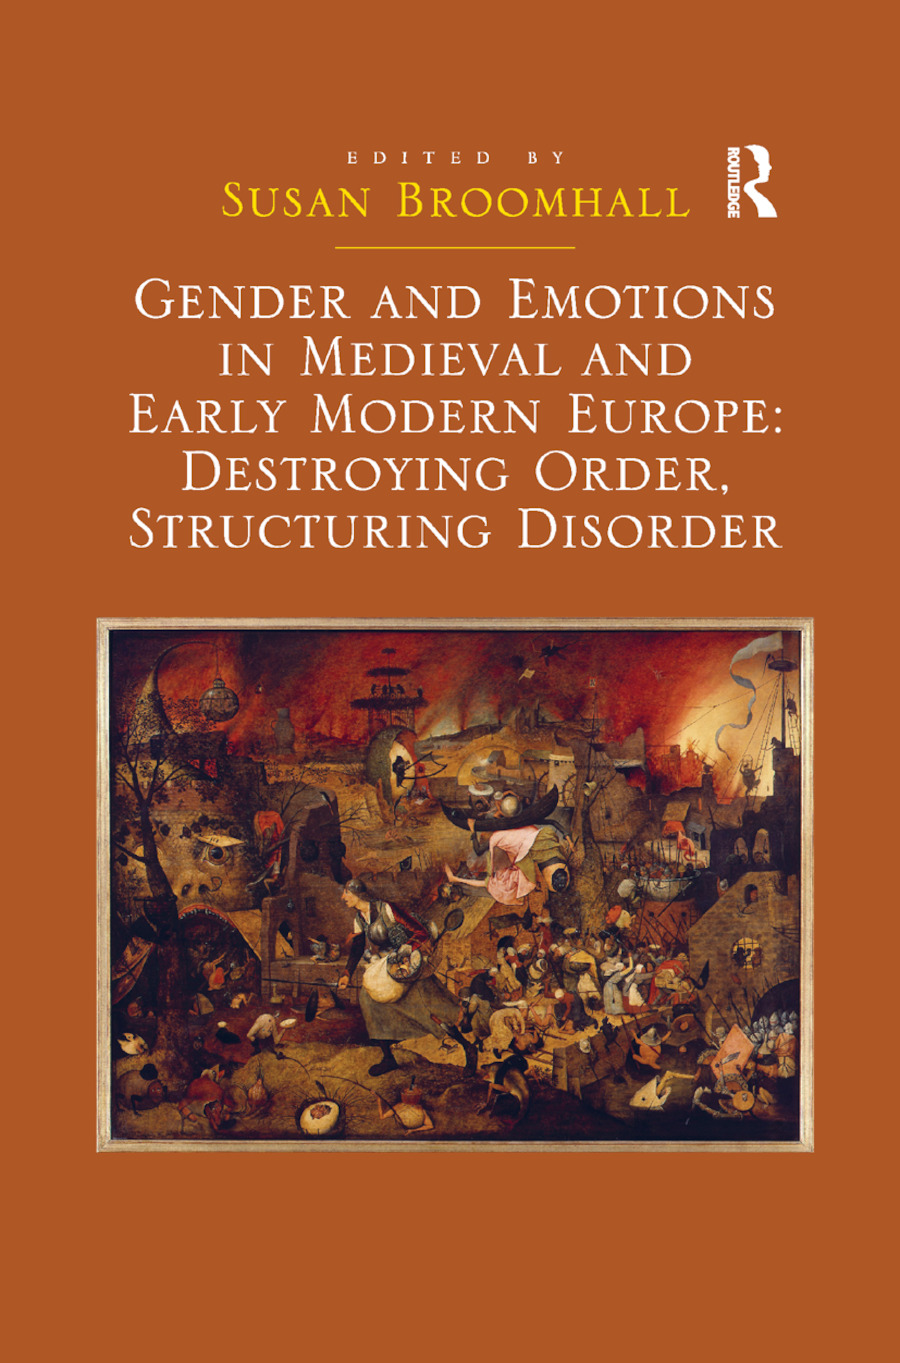 Gender and Emotions in Medieval and Early Modern Europe: Destroying Order, Structuring Disorder book cover